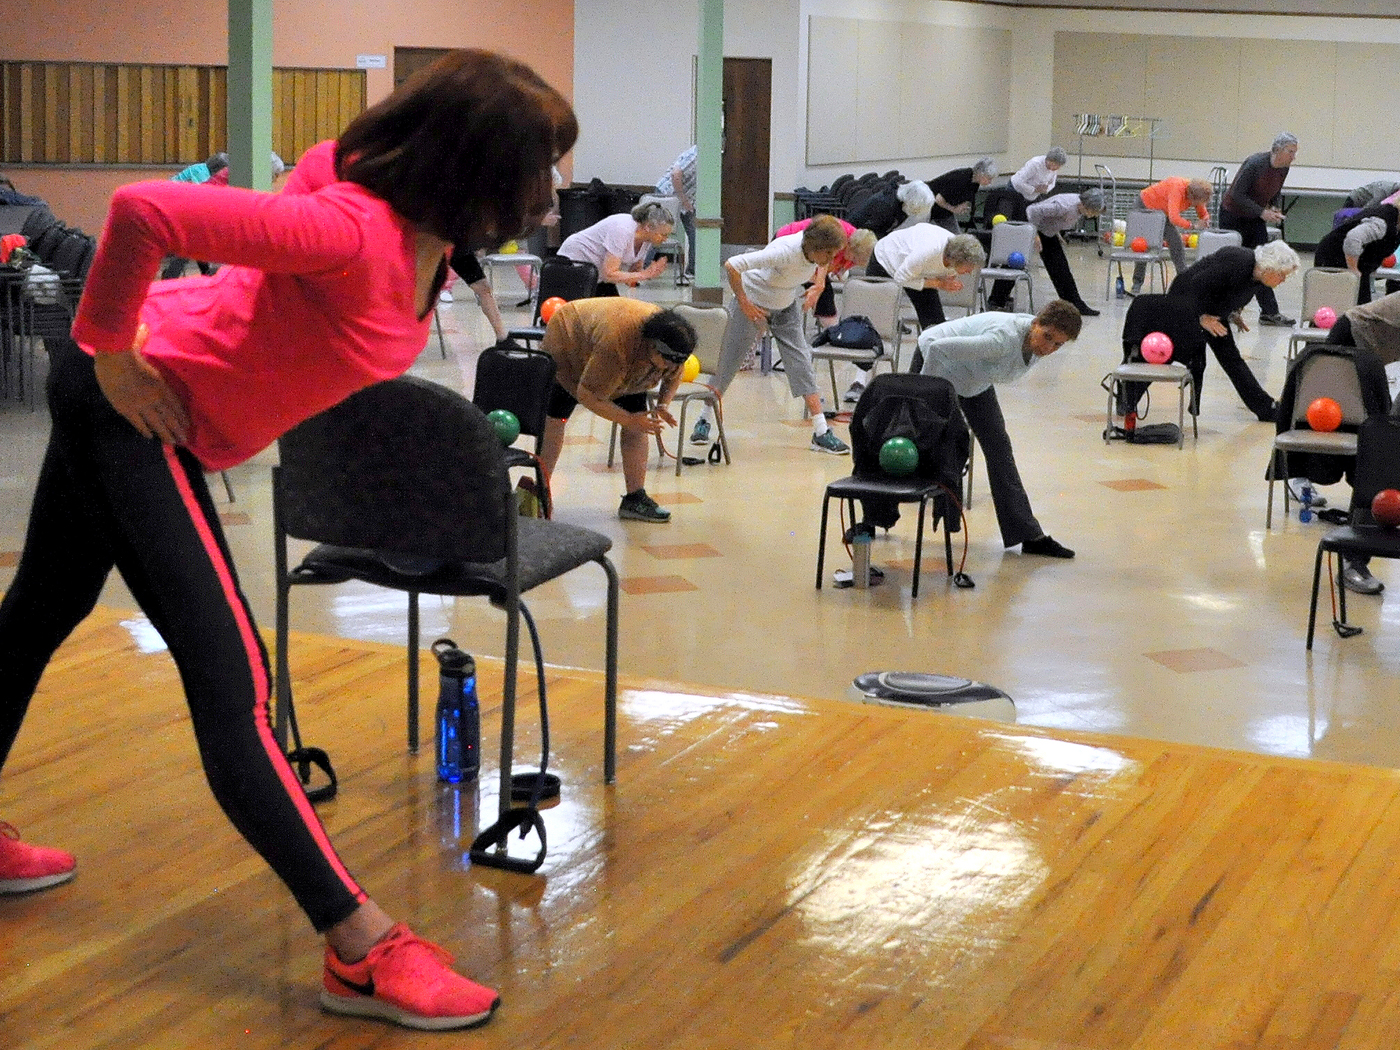 SilverSneakers 2018 Instructor of the Year Margaret Agnew Teaching a Group Fitness Class